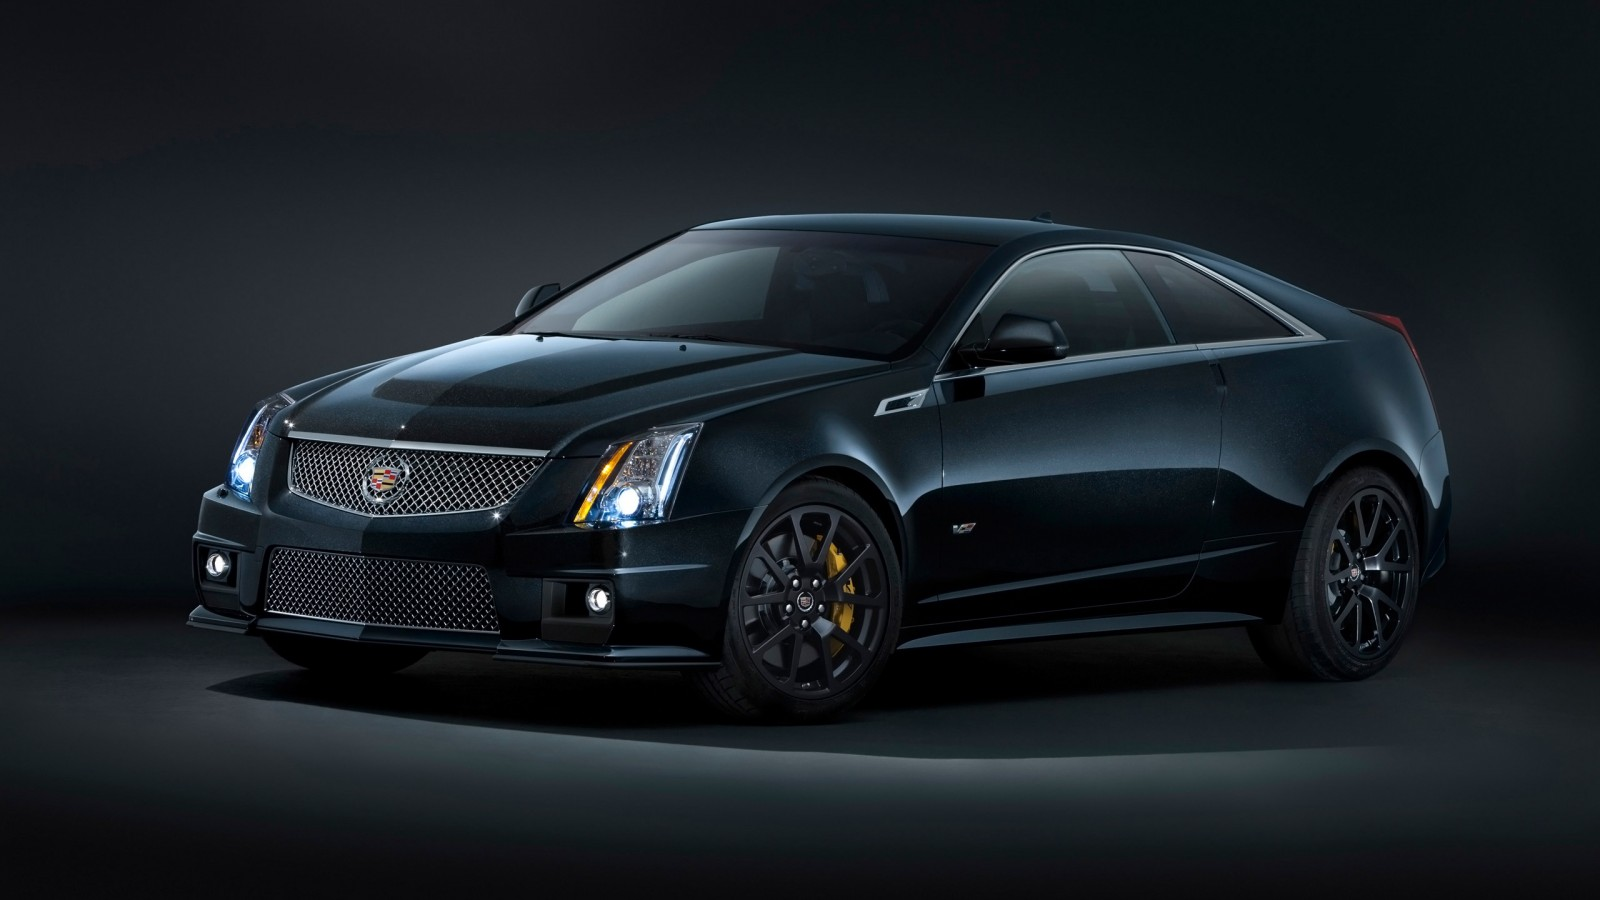 2014 cadillac cts v coupe wallpaper hd car wallpapers. Black Bedroom Furniture Sets. Home Design Ideas